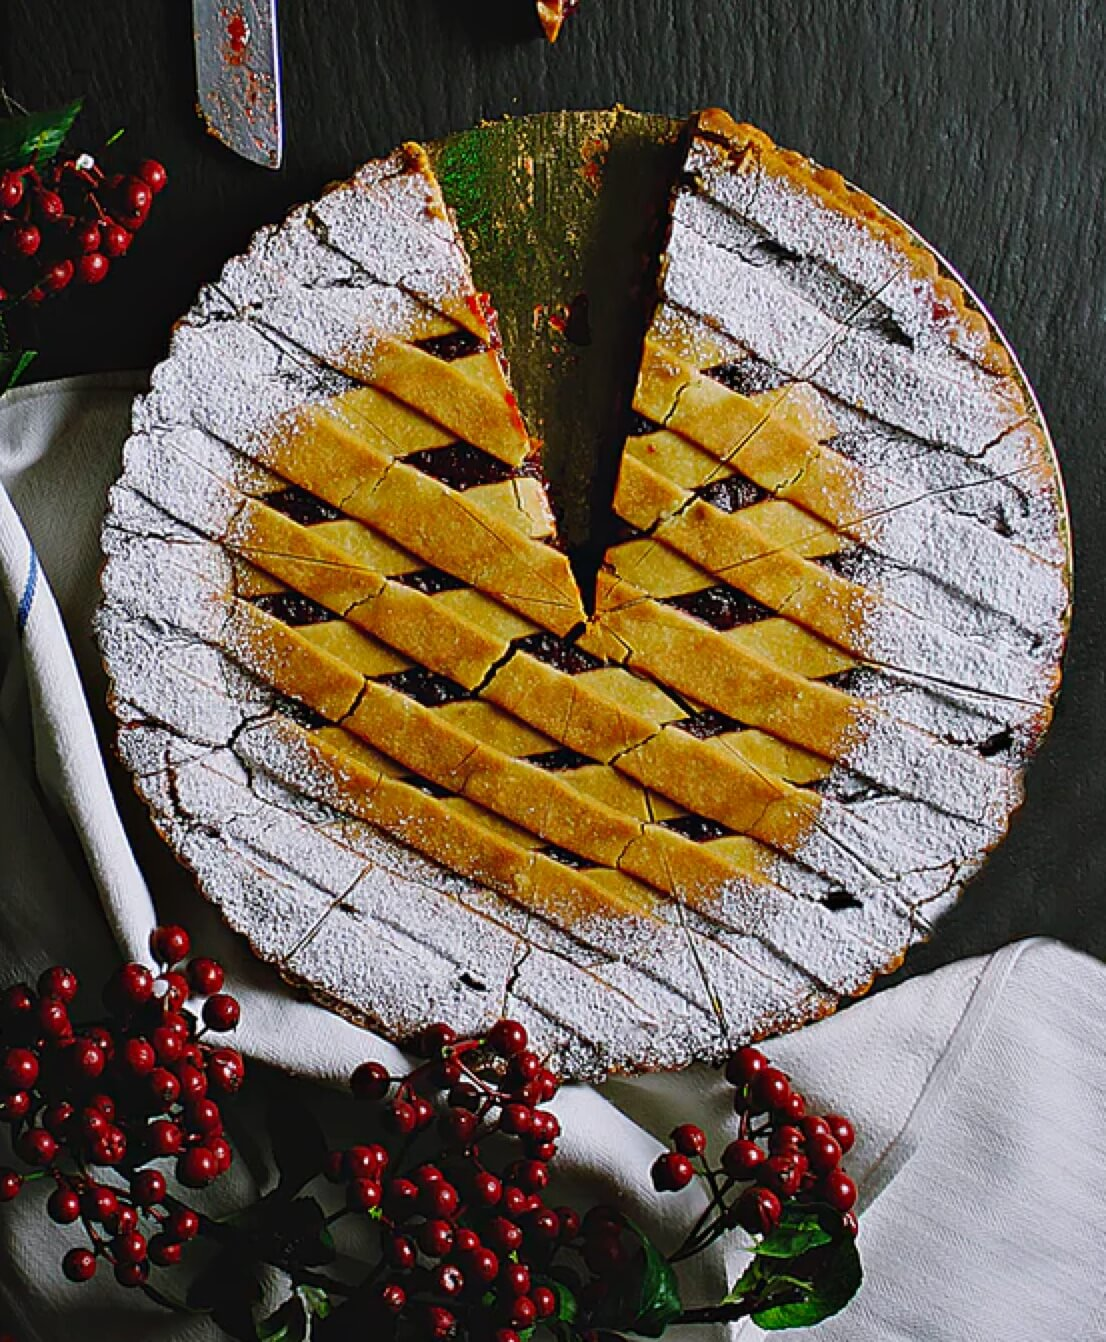 A really tasty looking pie